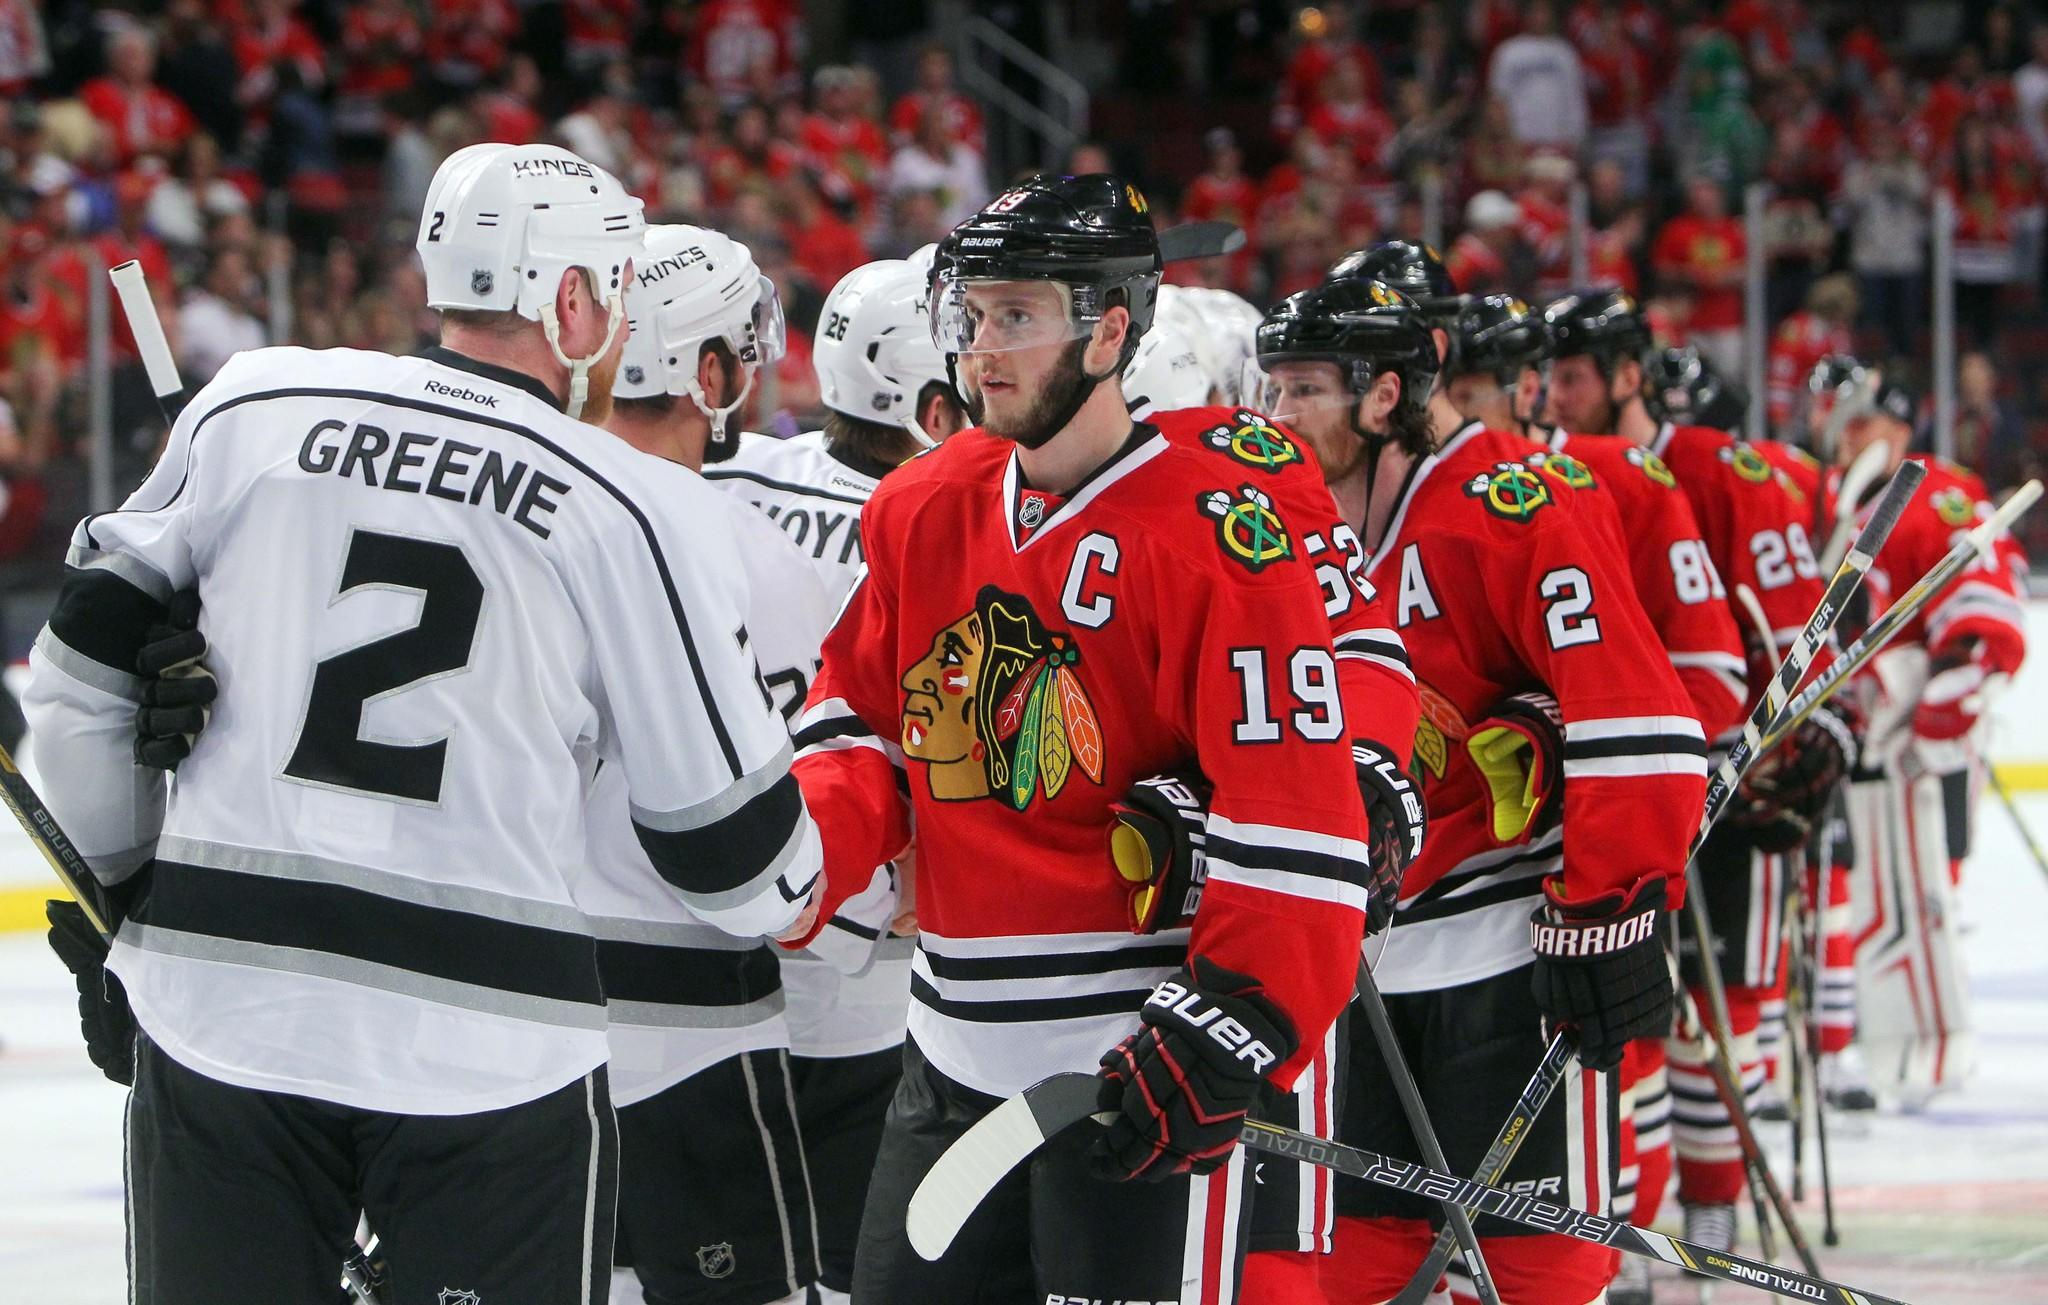 Chicago Blackhawks center Jonathan Toews (19) shakes hands with Los Angeles Kings defenseman Matt Greene (2) after game seven of the Western Conference Final of the 2014 Stanley Cup Playoffs at United Center.